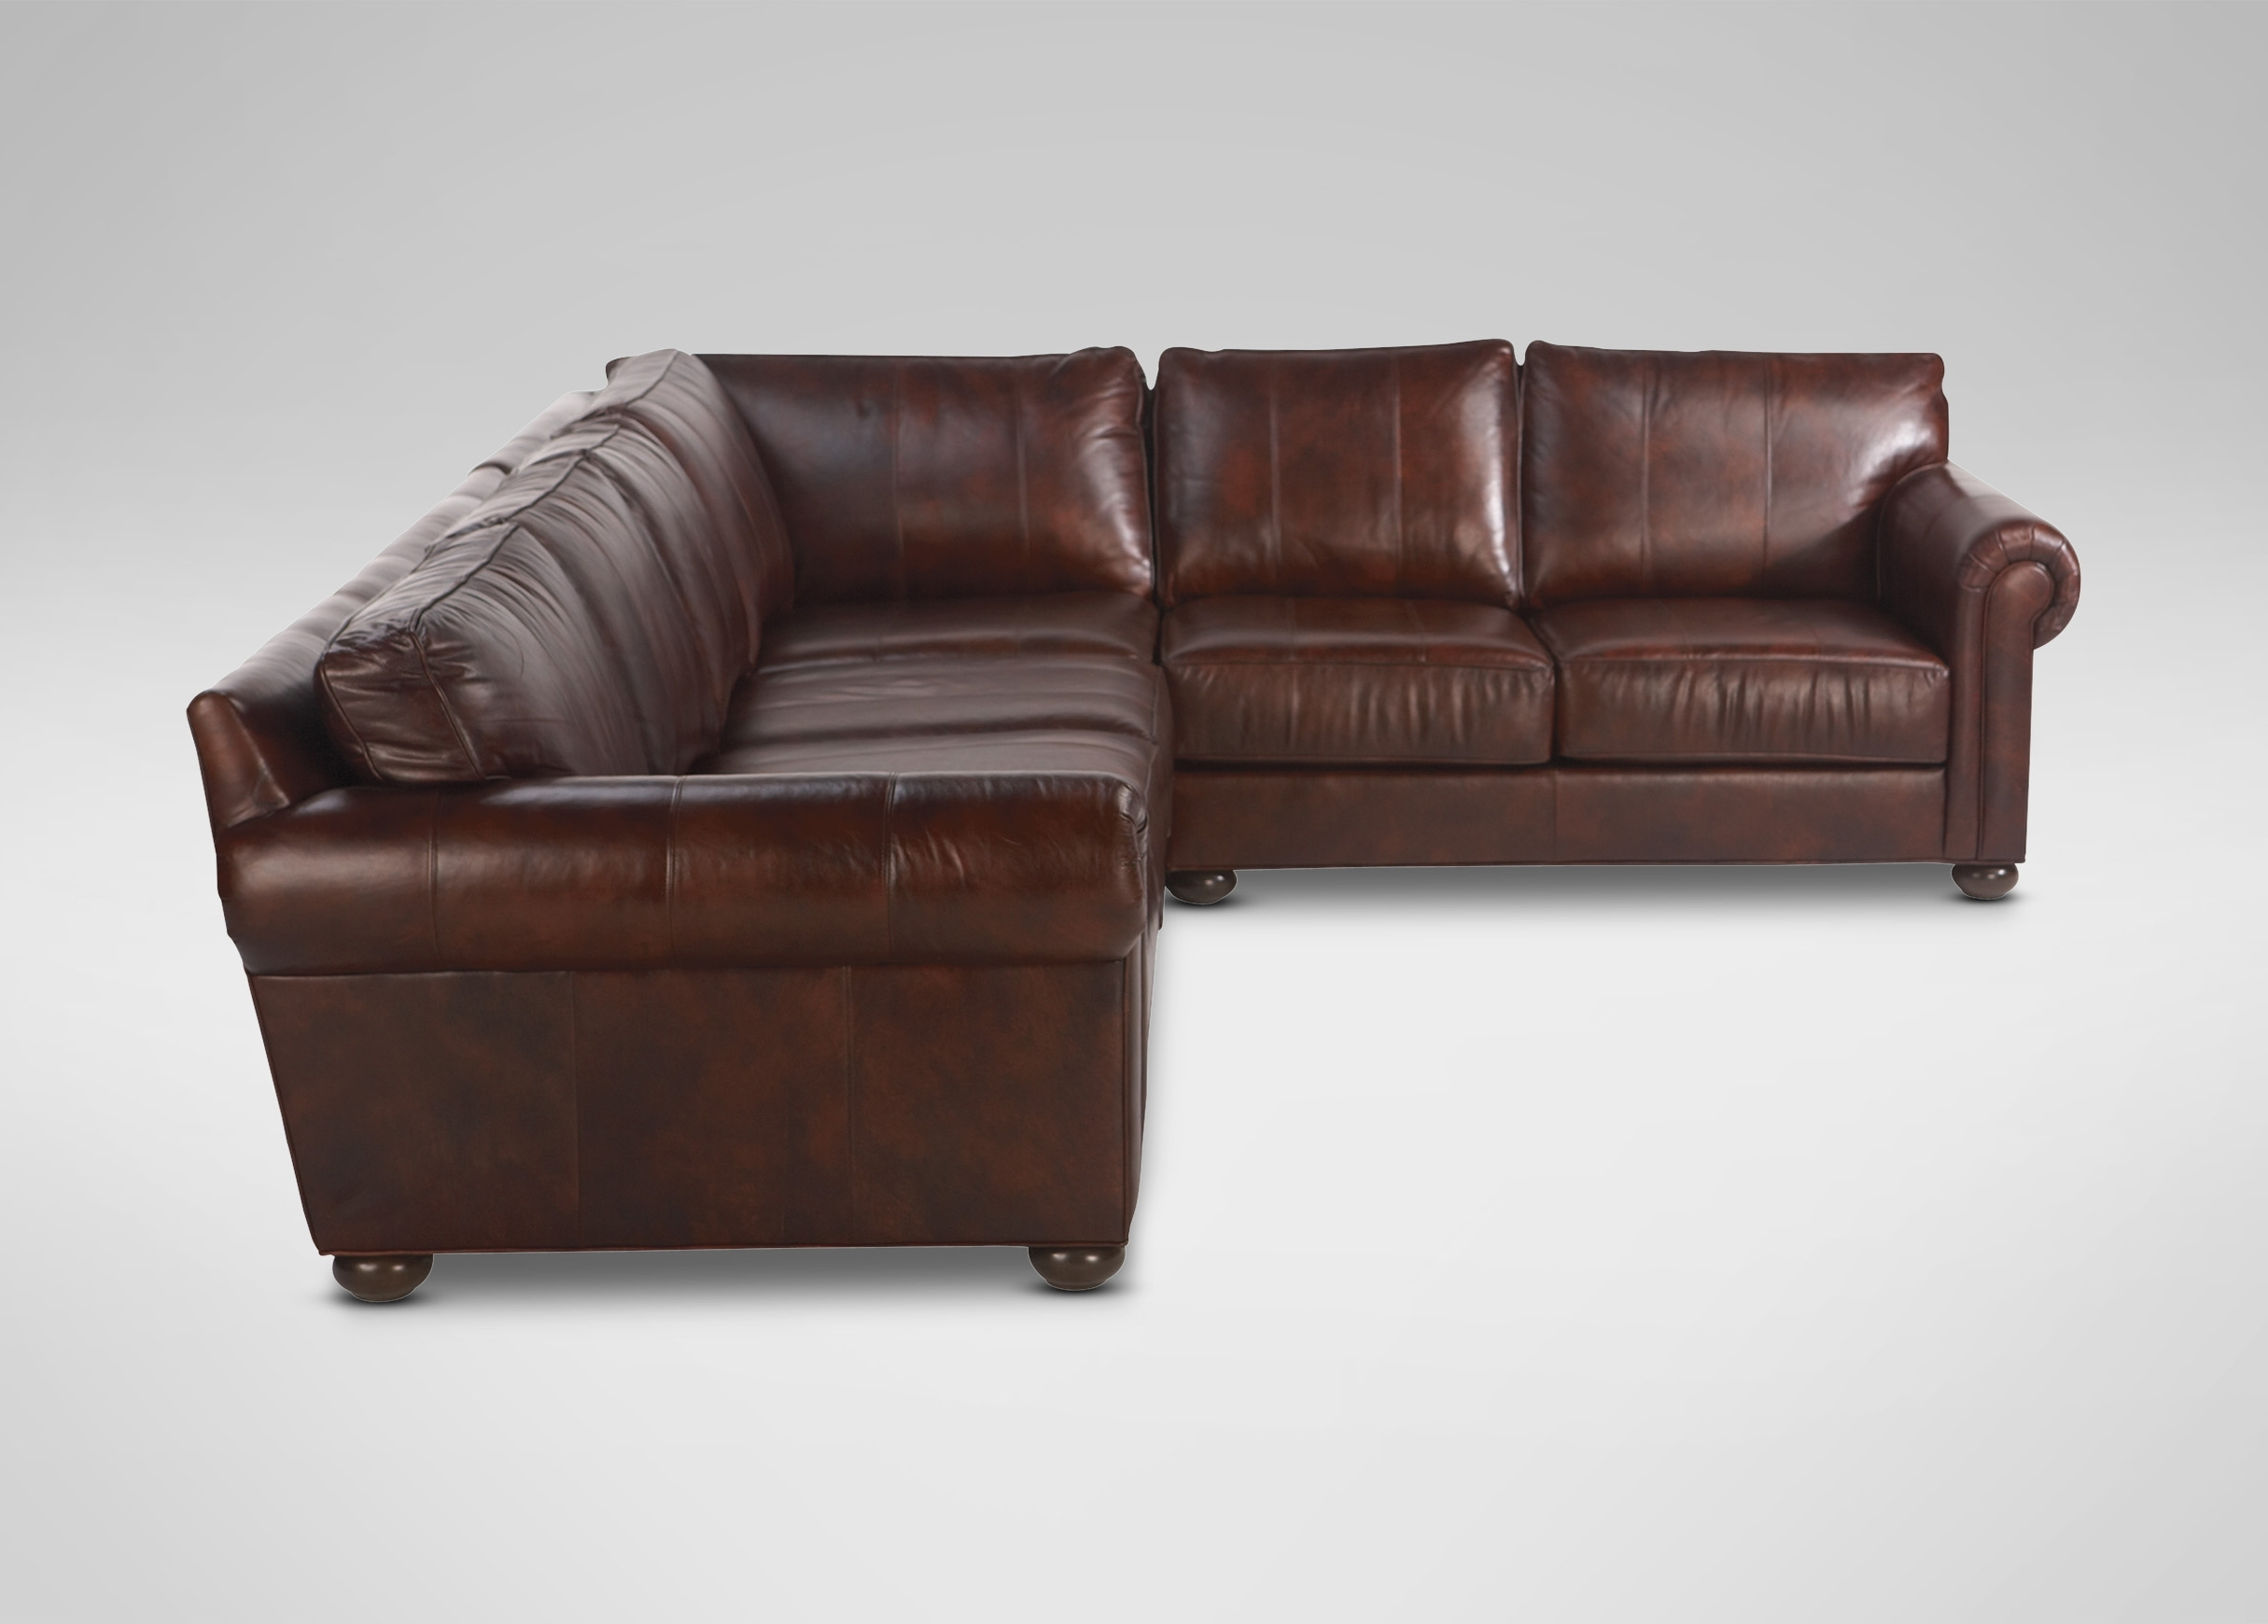 Sectional Sofas At Barrie With Regard To Well Liked Furniture : Claudia Ii Leather Sofa And Loveseat Macys Leather (View 17 of 20)